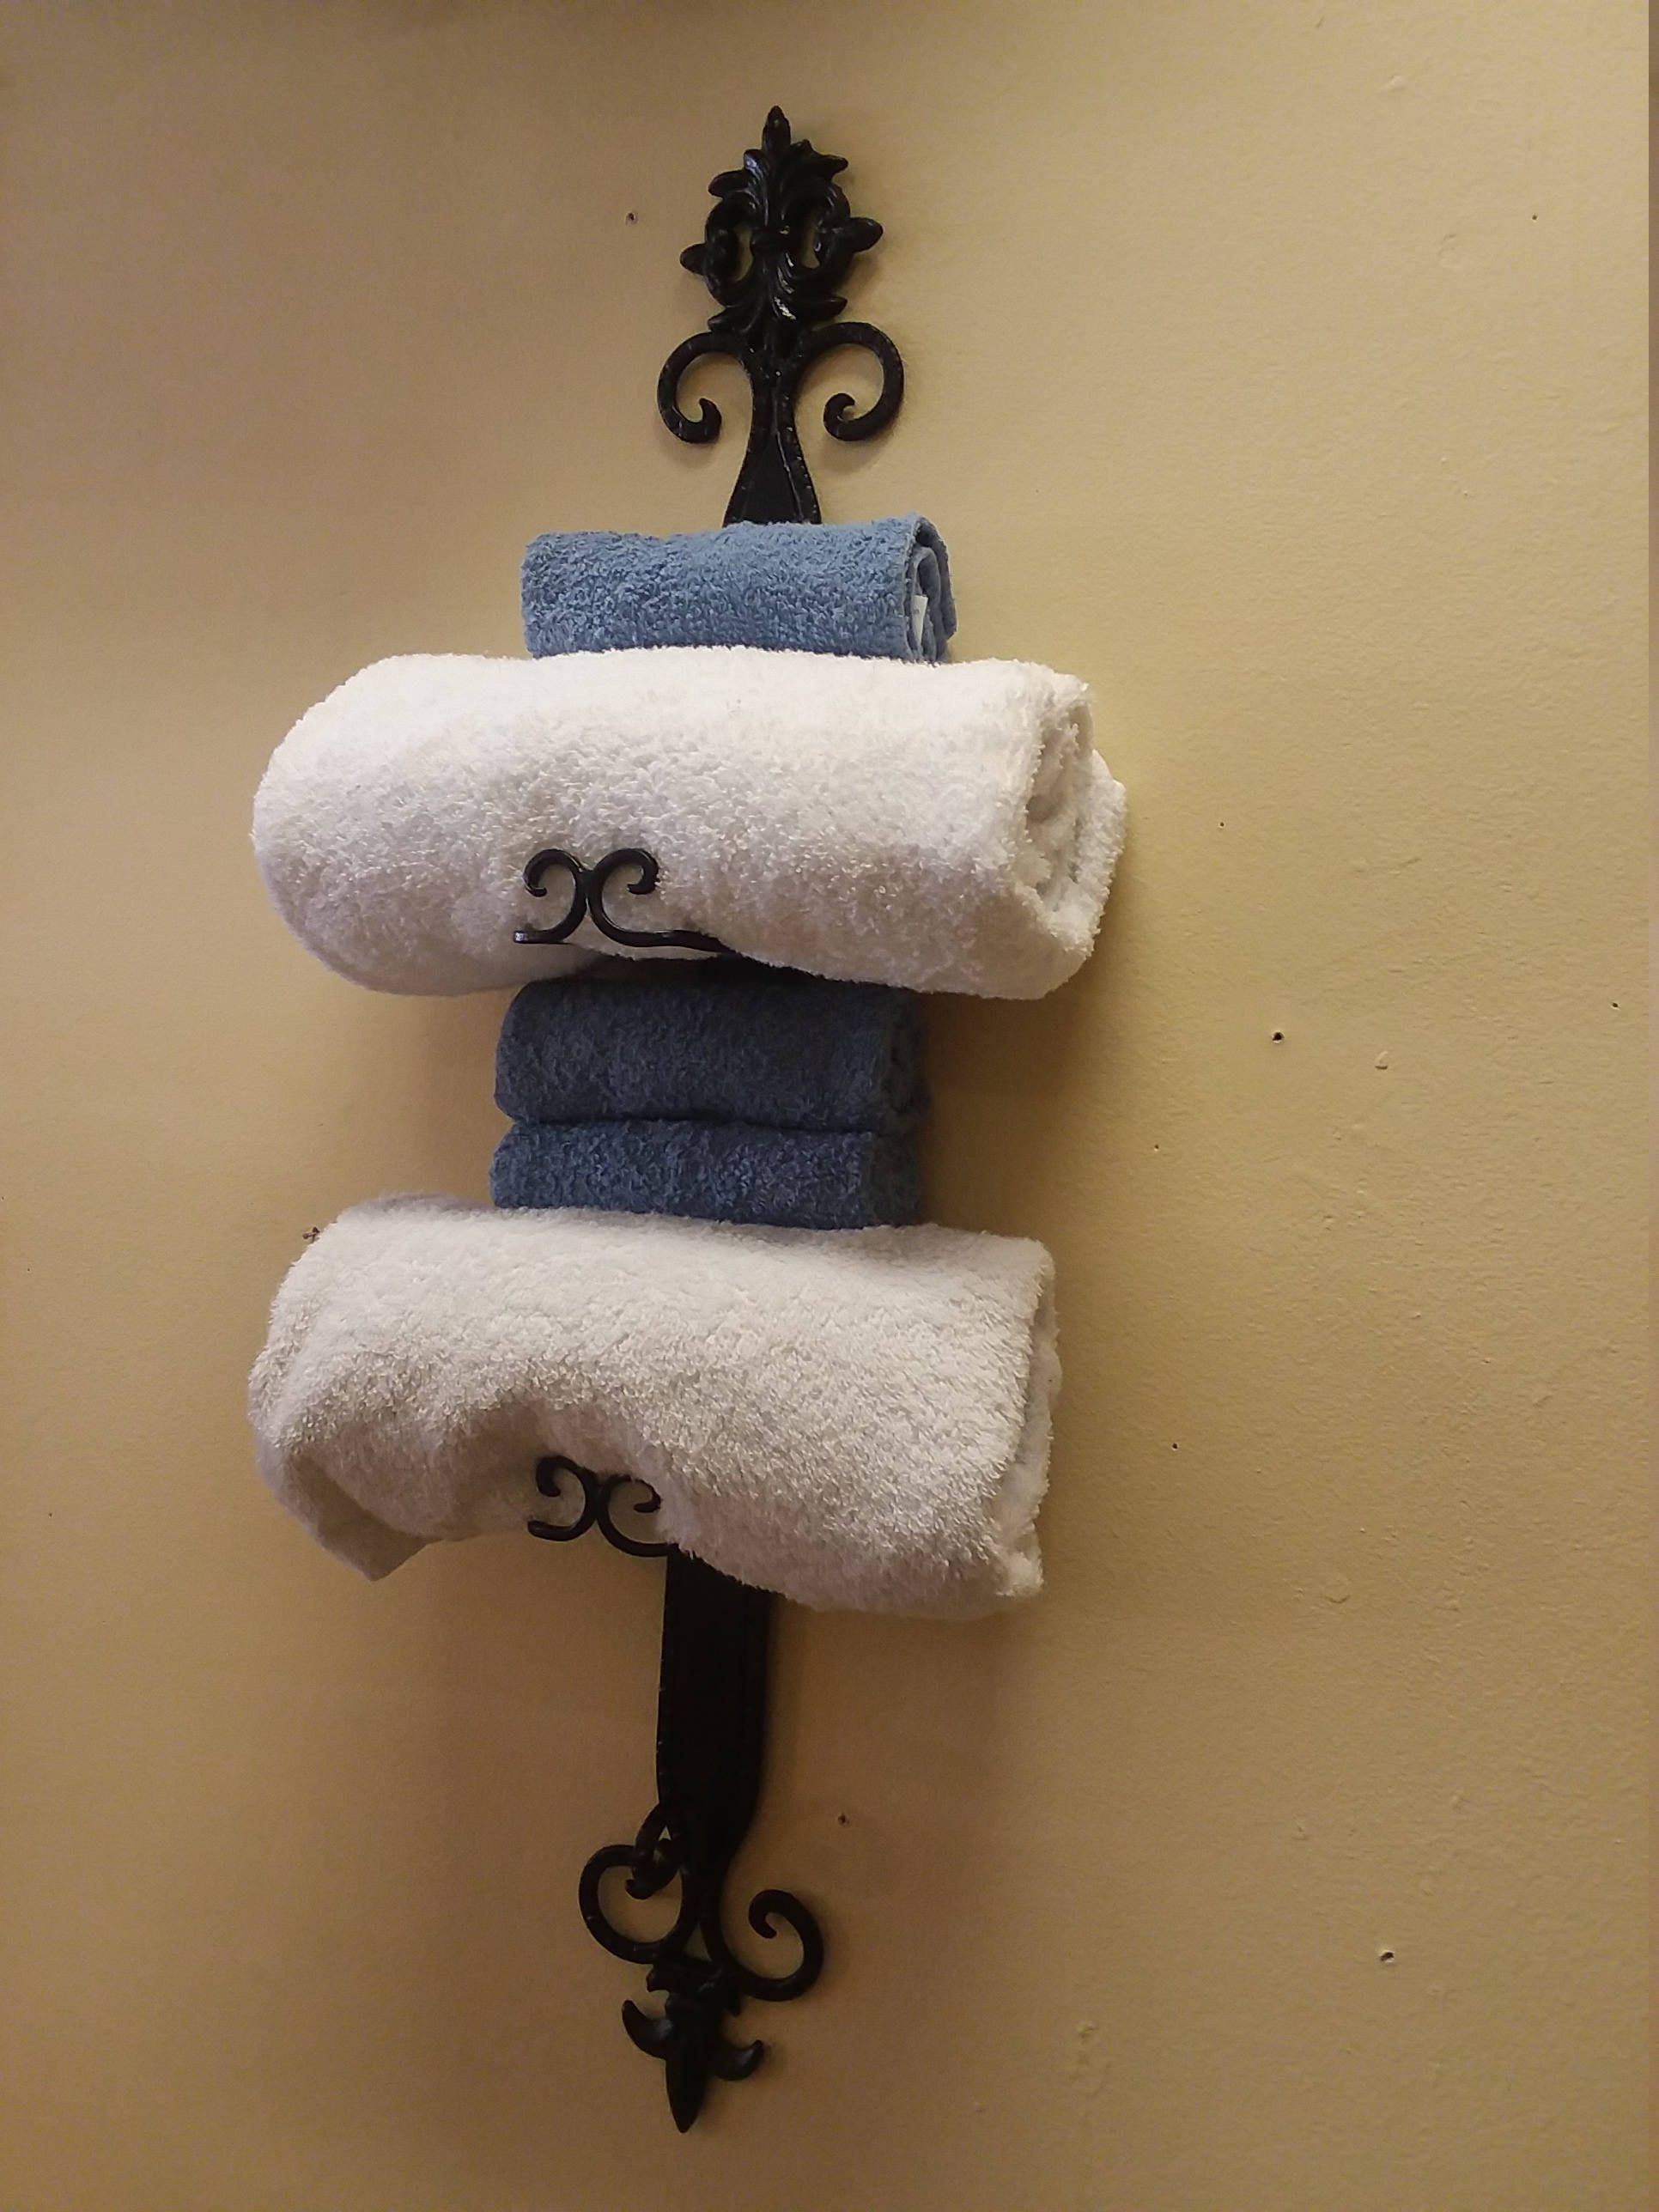 Vintage Gothic Style Wrought Iron Wall Rack Hang Towels Sheets